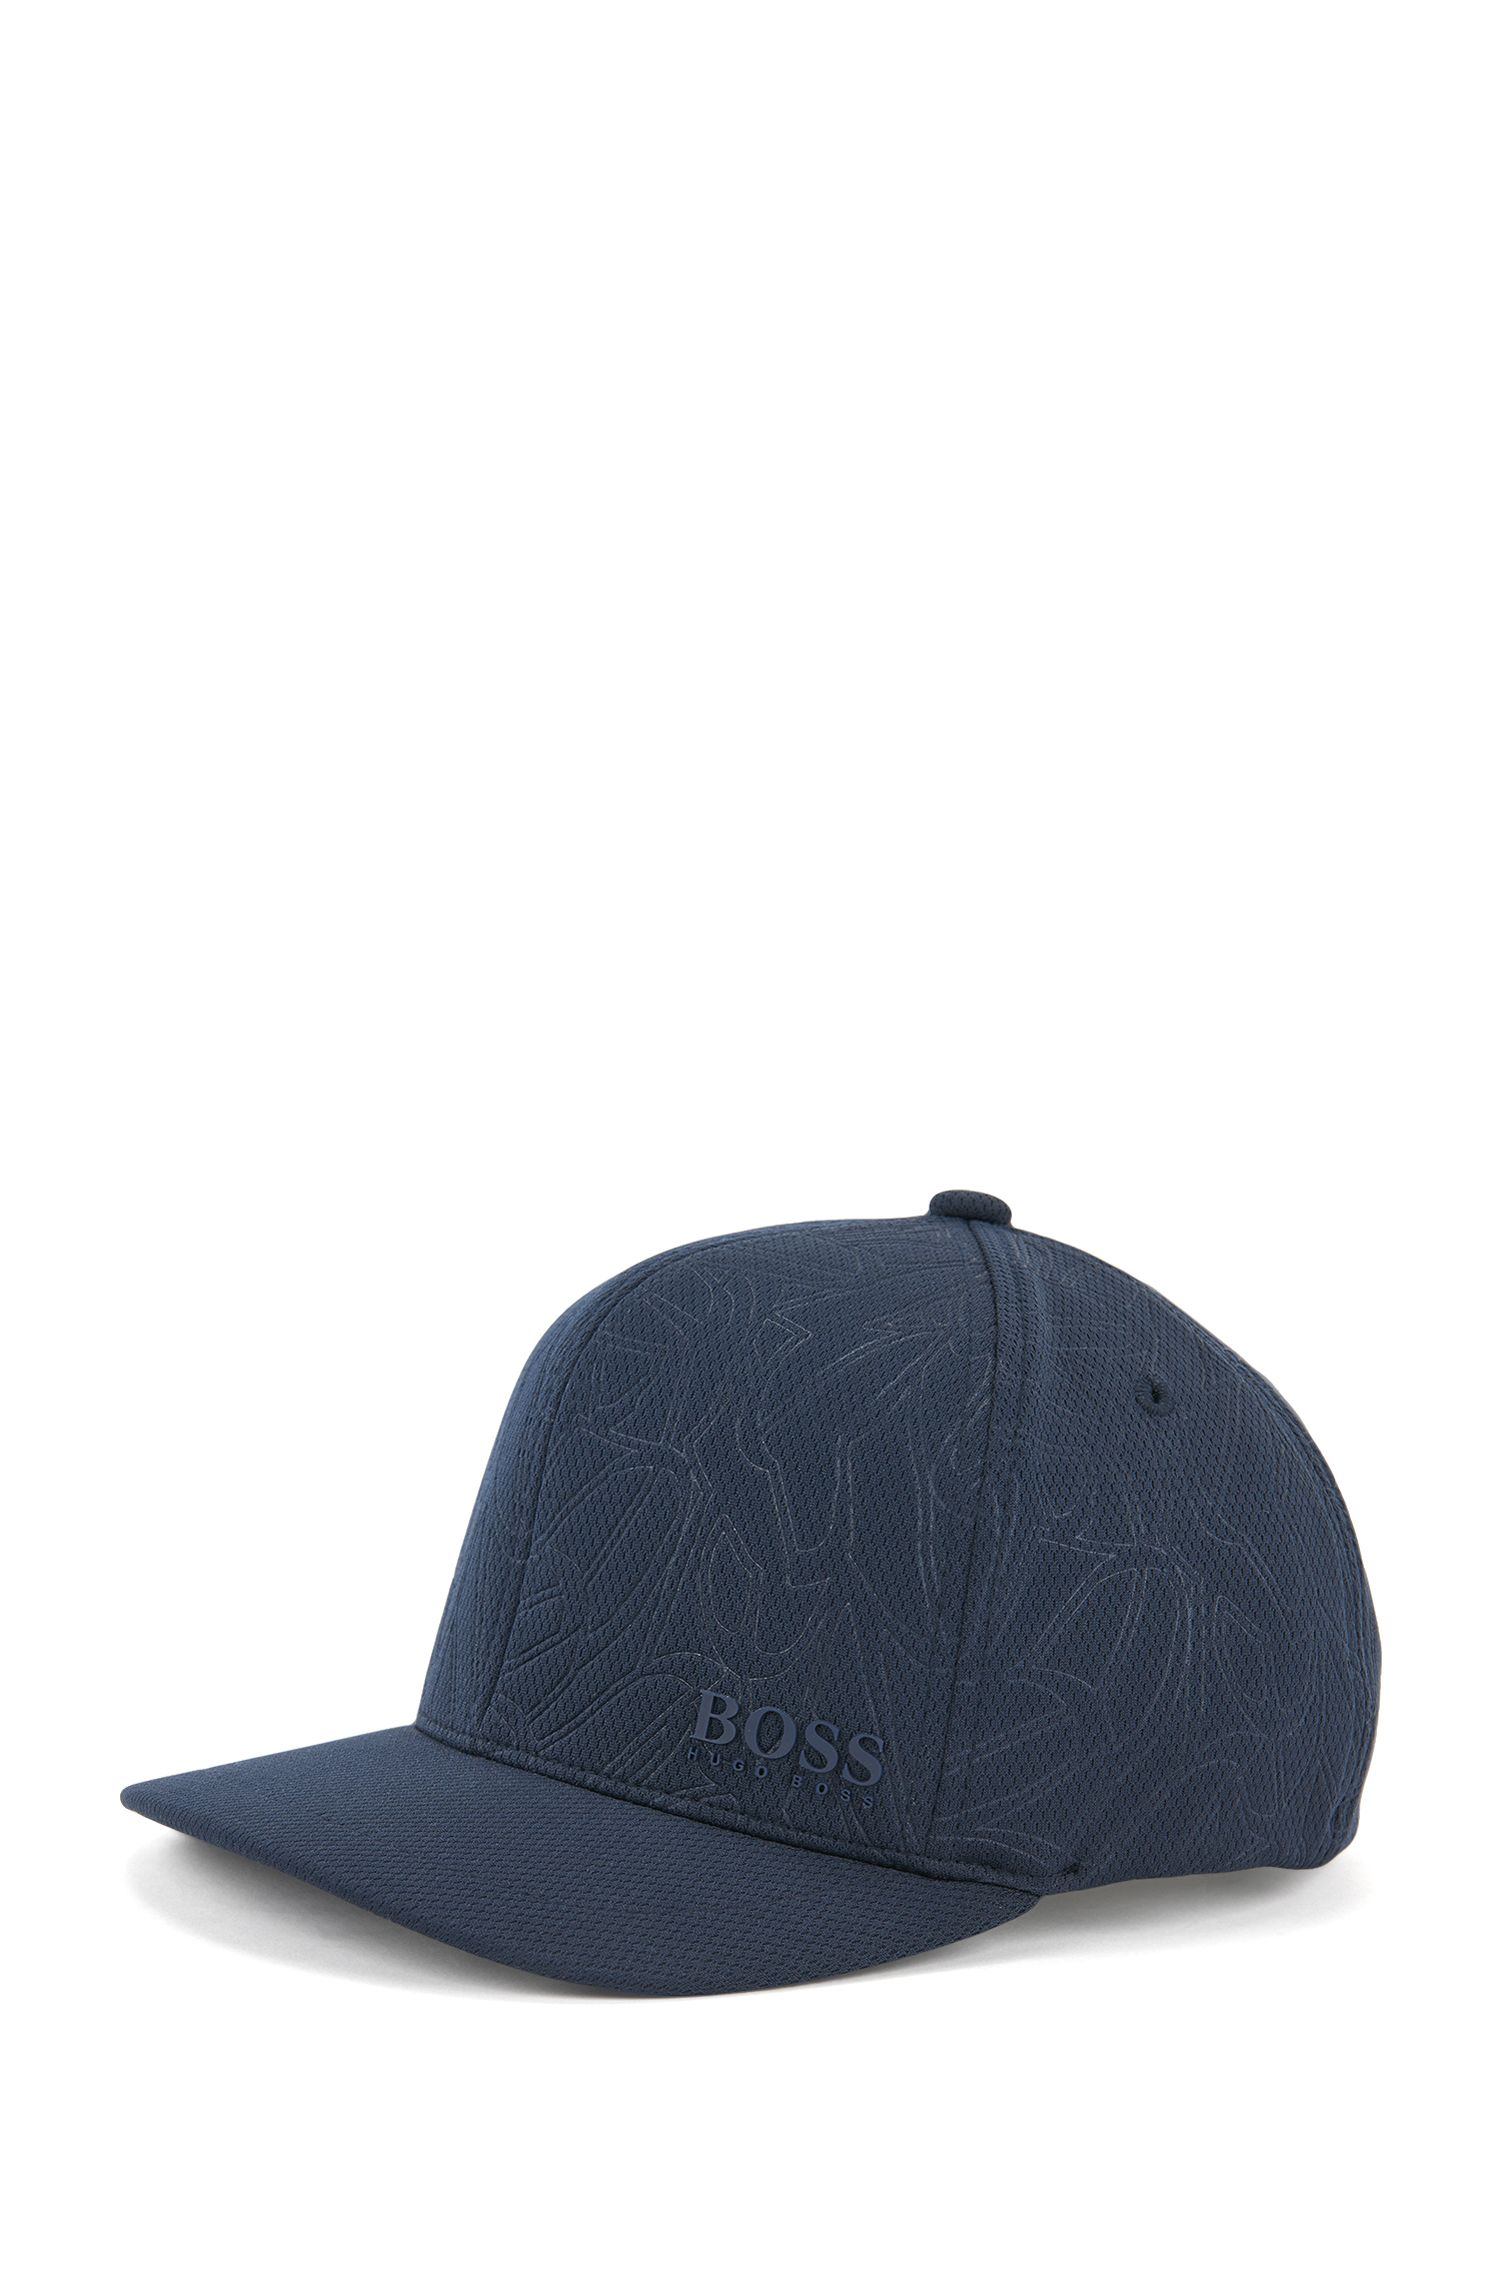 Patterned baseball cap in honeycomb jersey